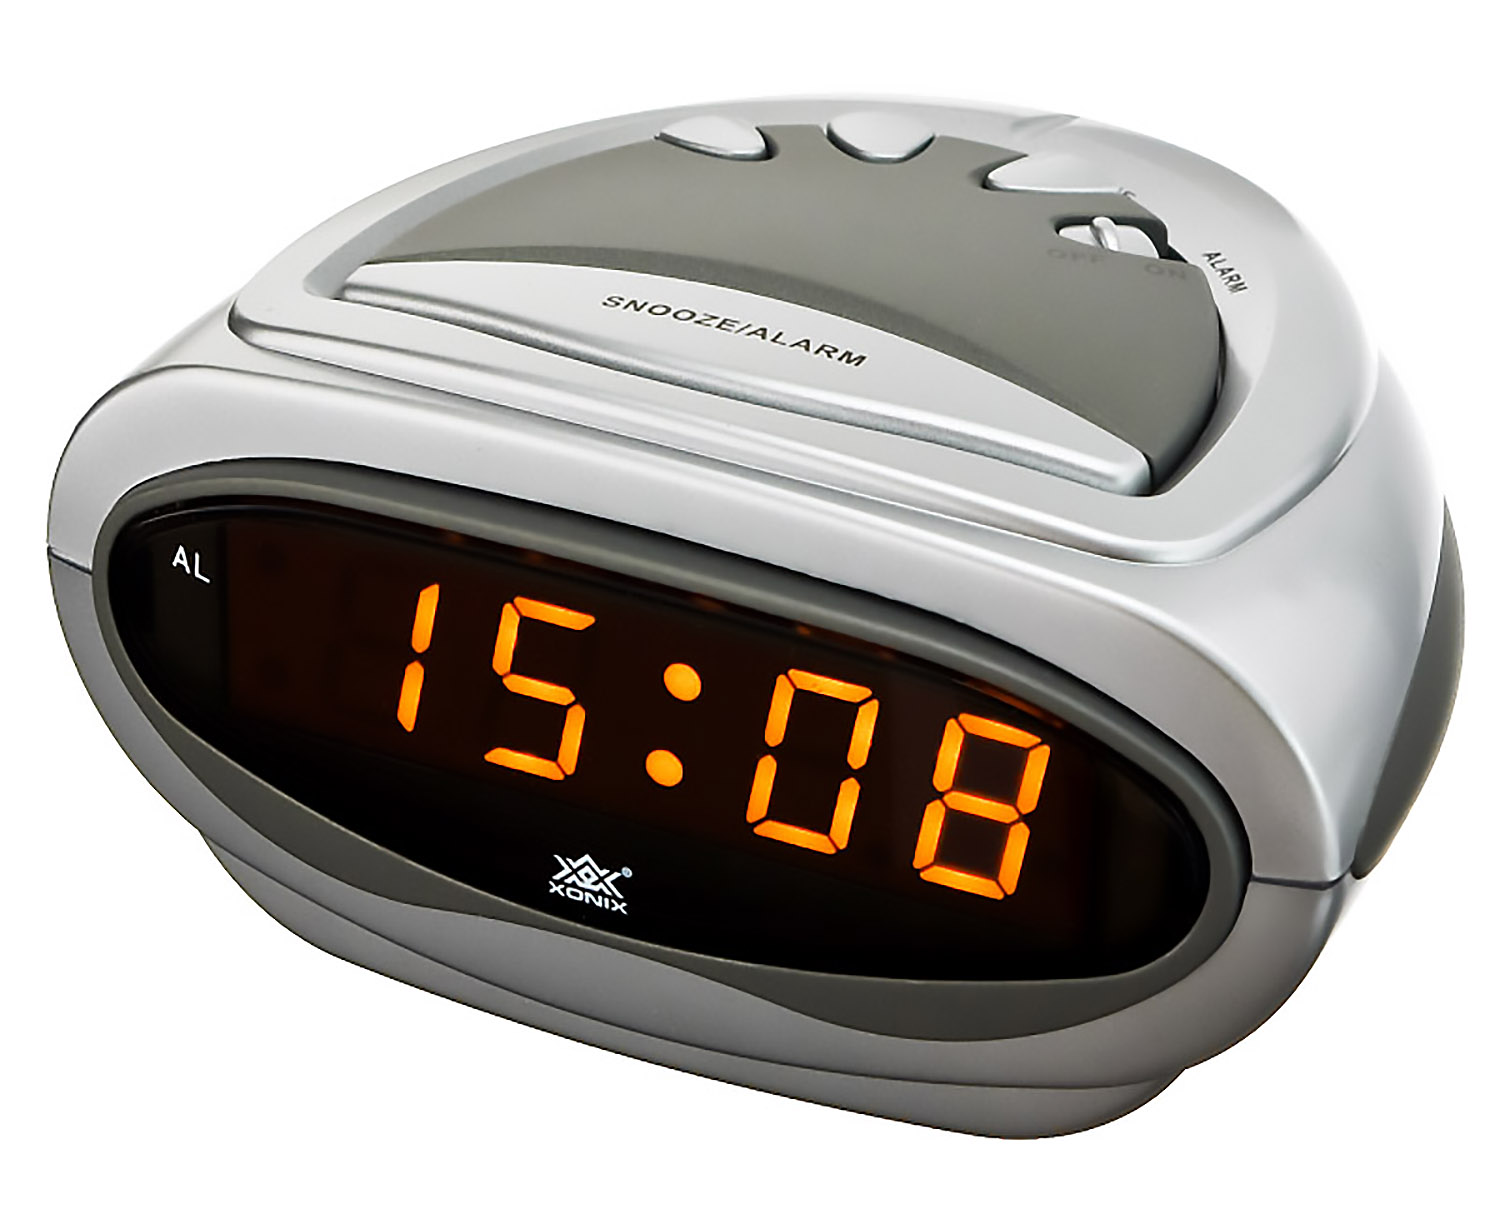 digital alarm clock xonix snooze mains power auxiliary baterry ebay. Black Bedroom Furniture Sets. Home Design Ideas